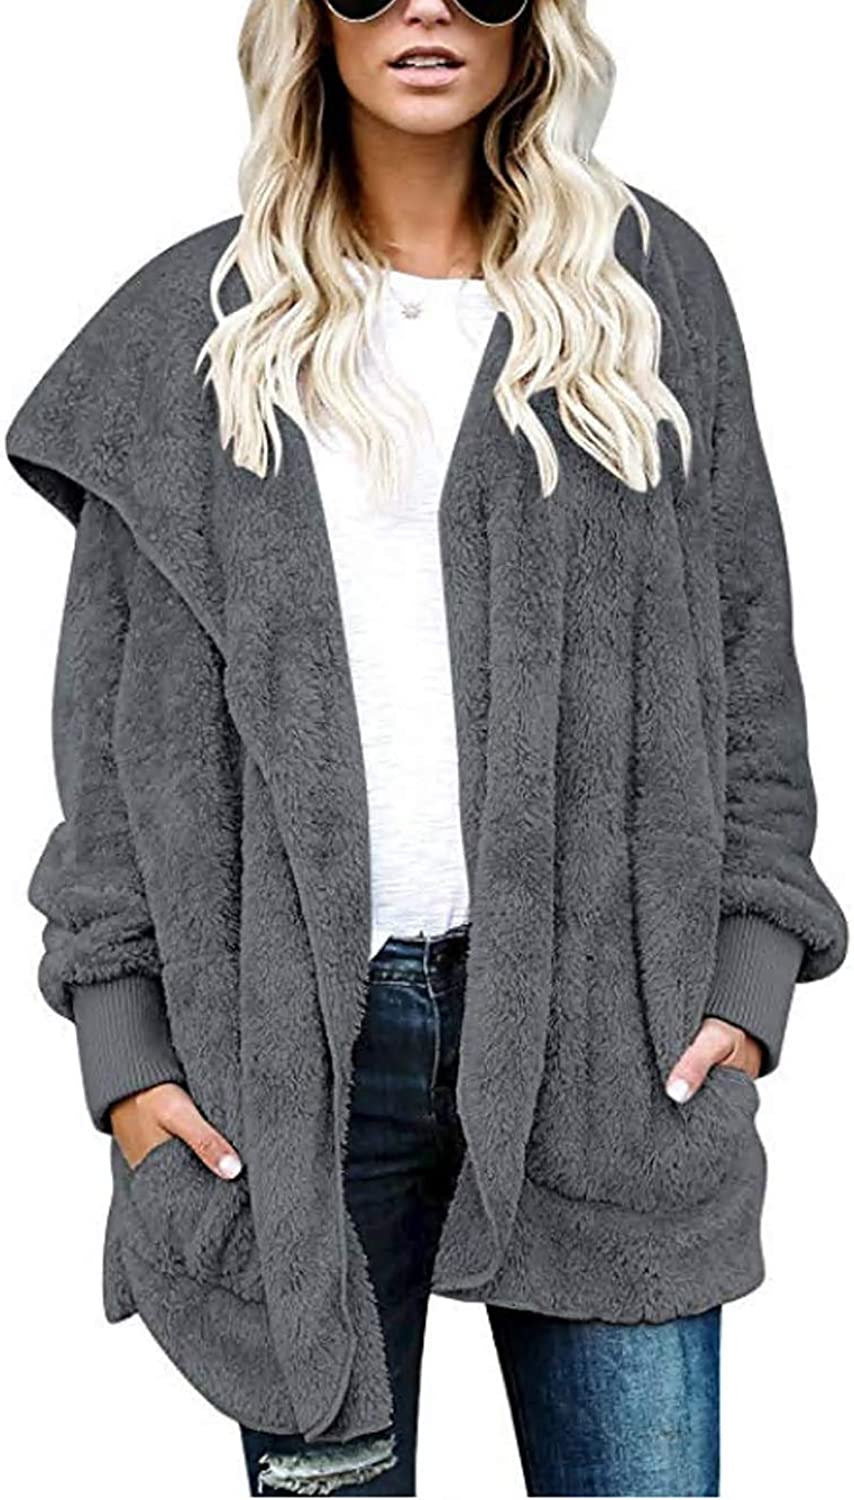 WDAmour Womens Furry Open Front Hooded Cardigan Jacket Coat Outwear with Pocket